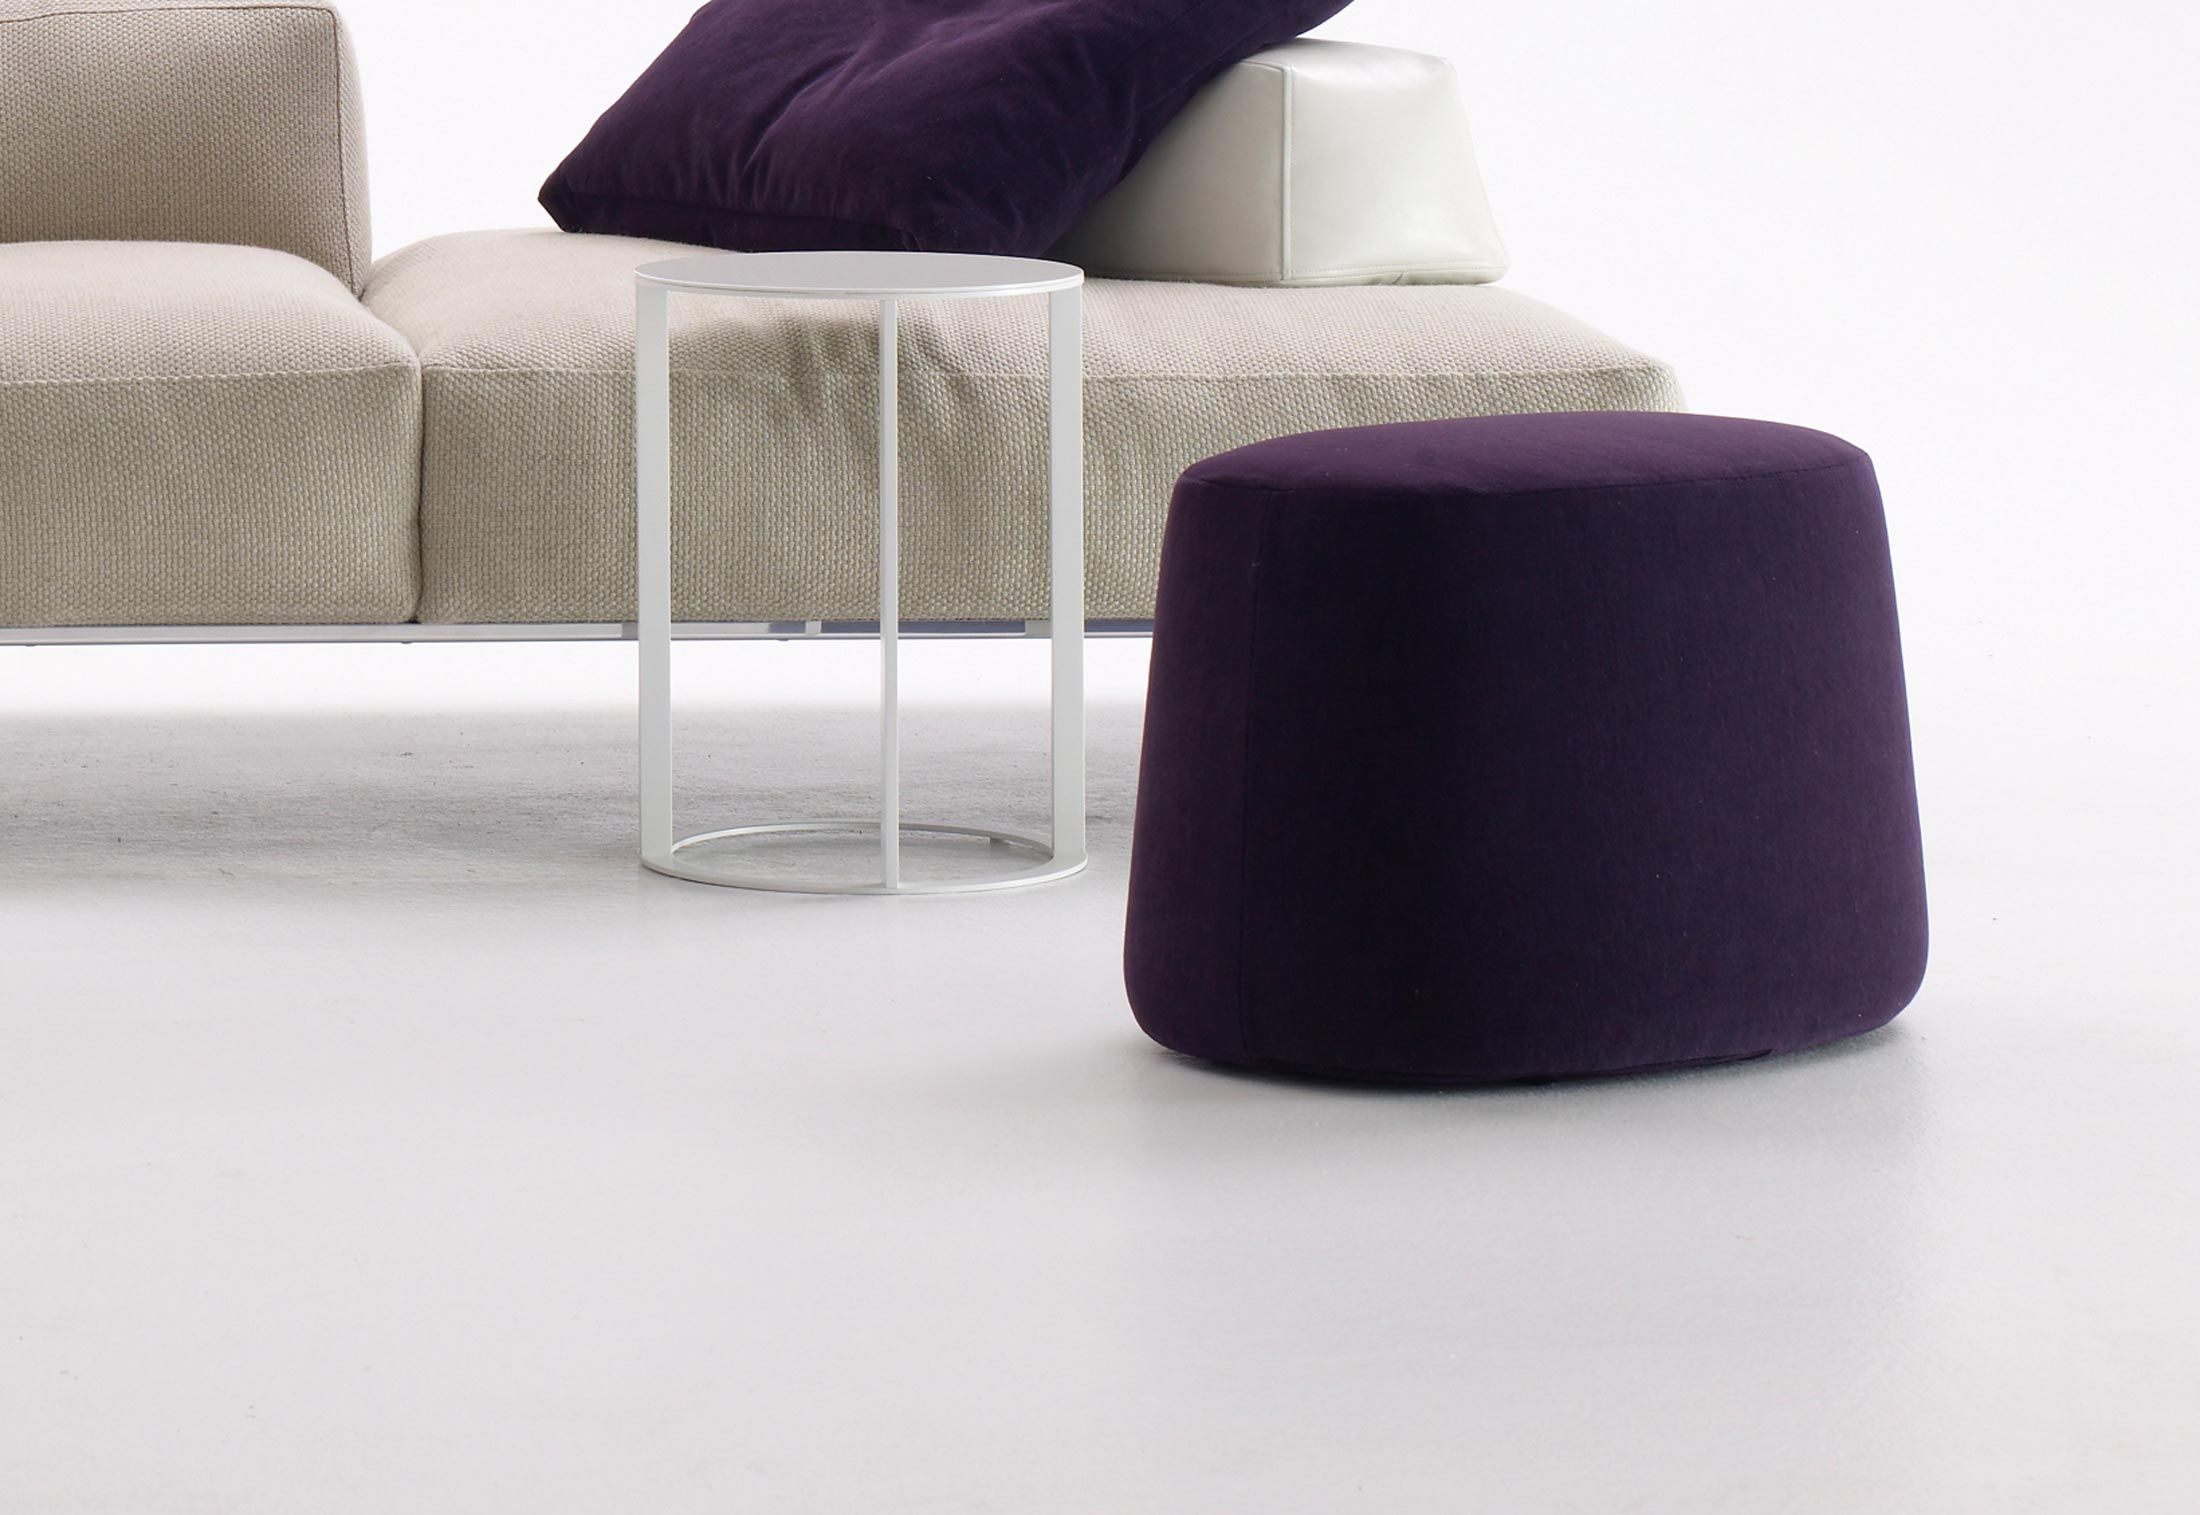 bb italia pouf  google search  modern ottomans  poufs  - find this pin and more on modern ottomans  poufs by habachydesigns